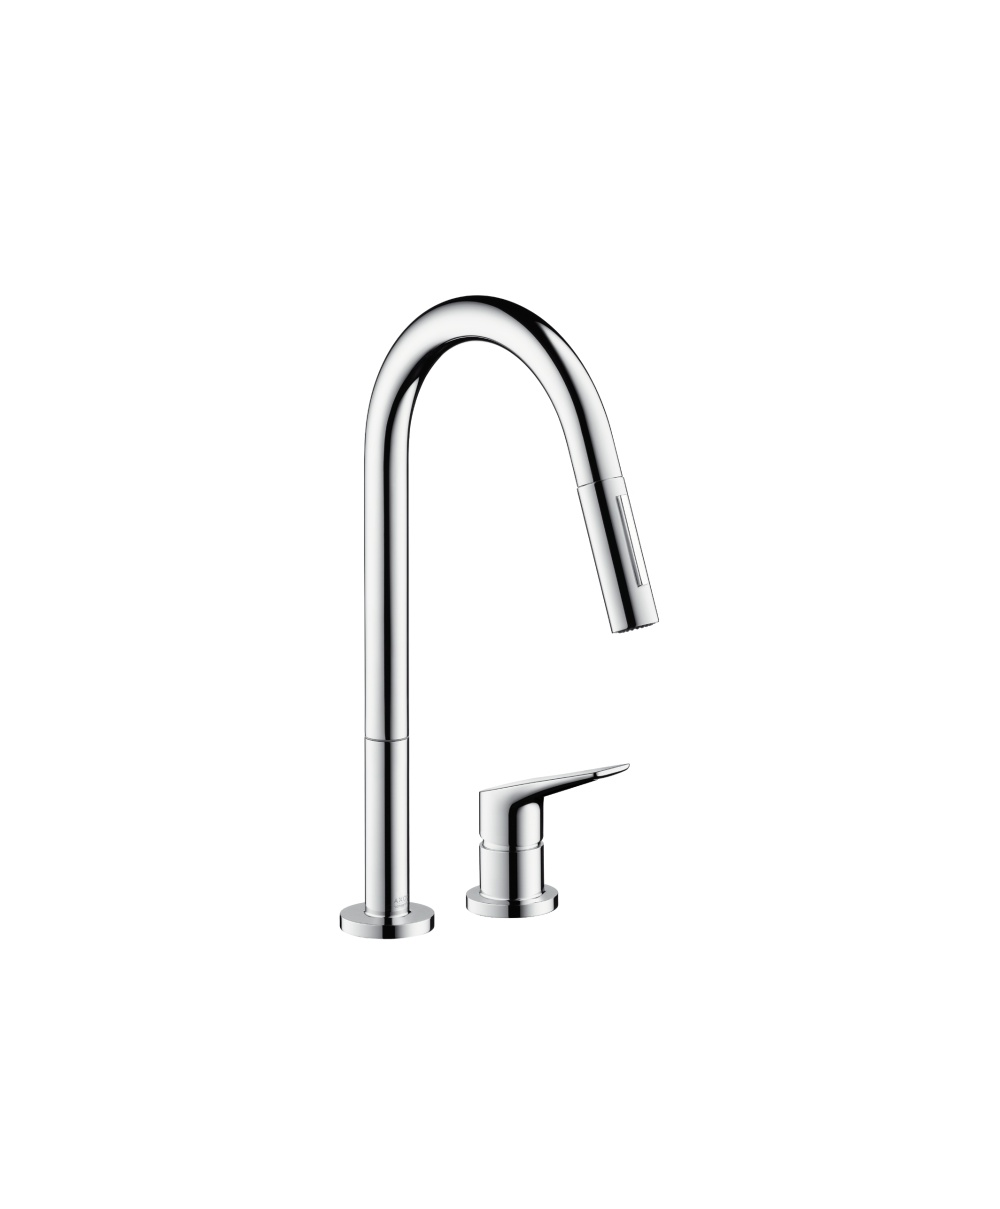 Axor Citterio M 2 Hole Kitchen Mixer With Pull Out Spray Axor From